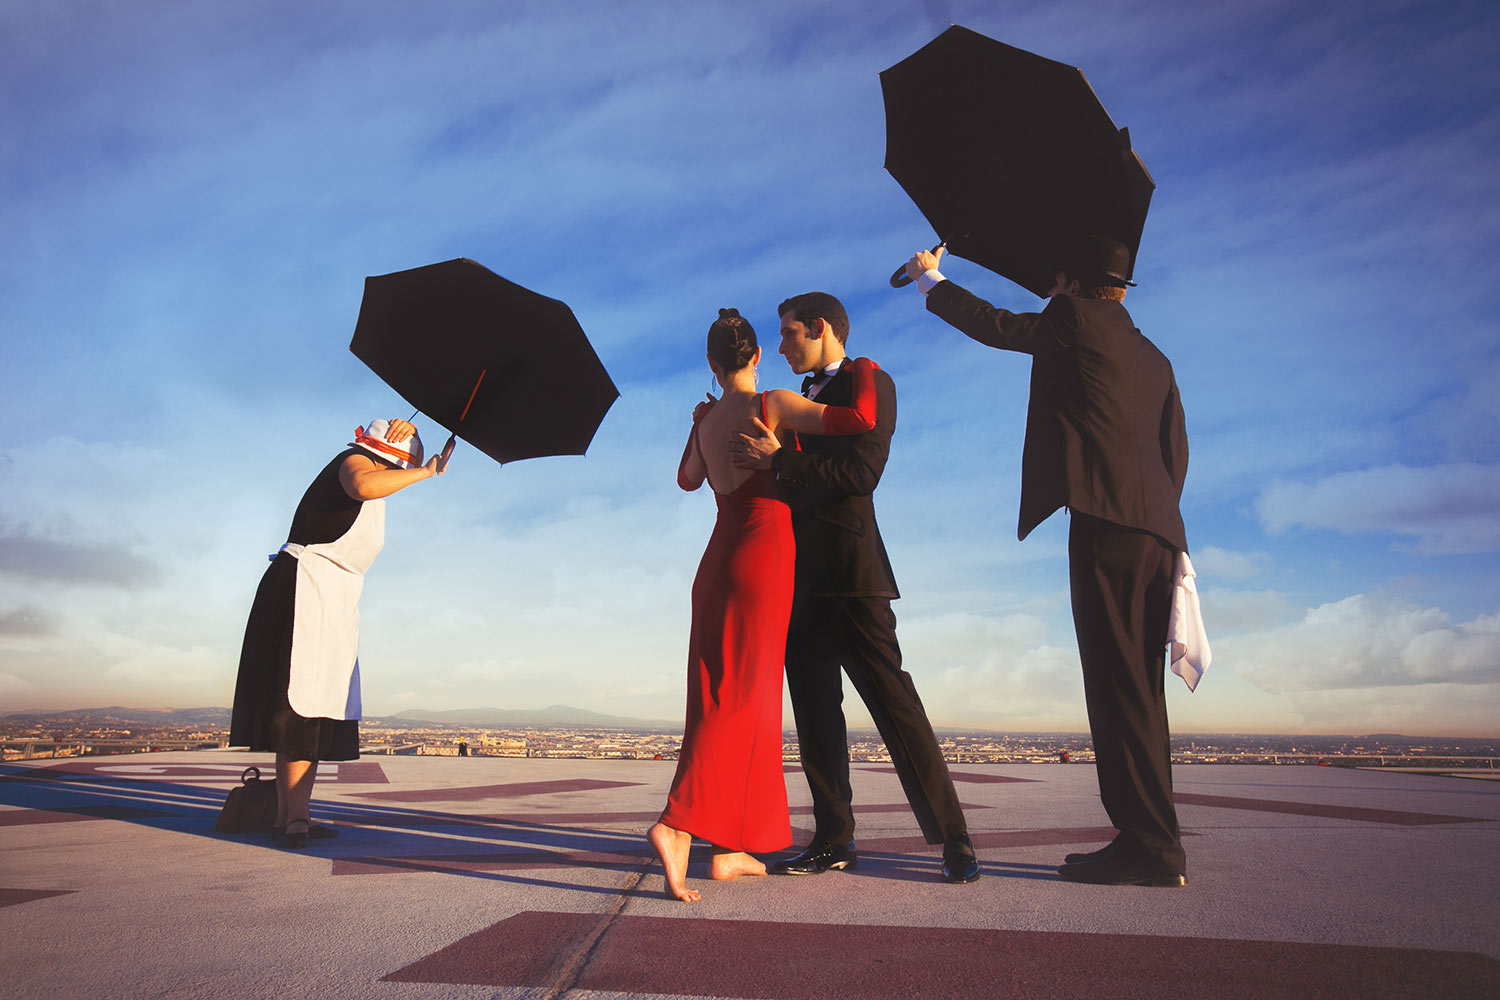 Los Angeles Rooftop engagement photo inspired by the Singing Butler